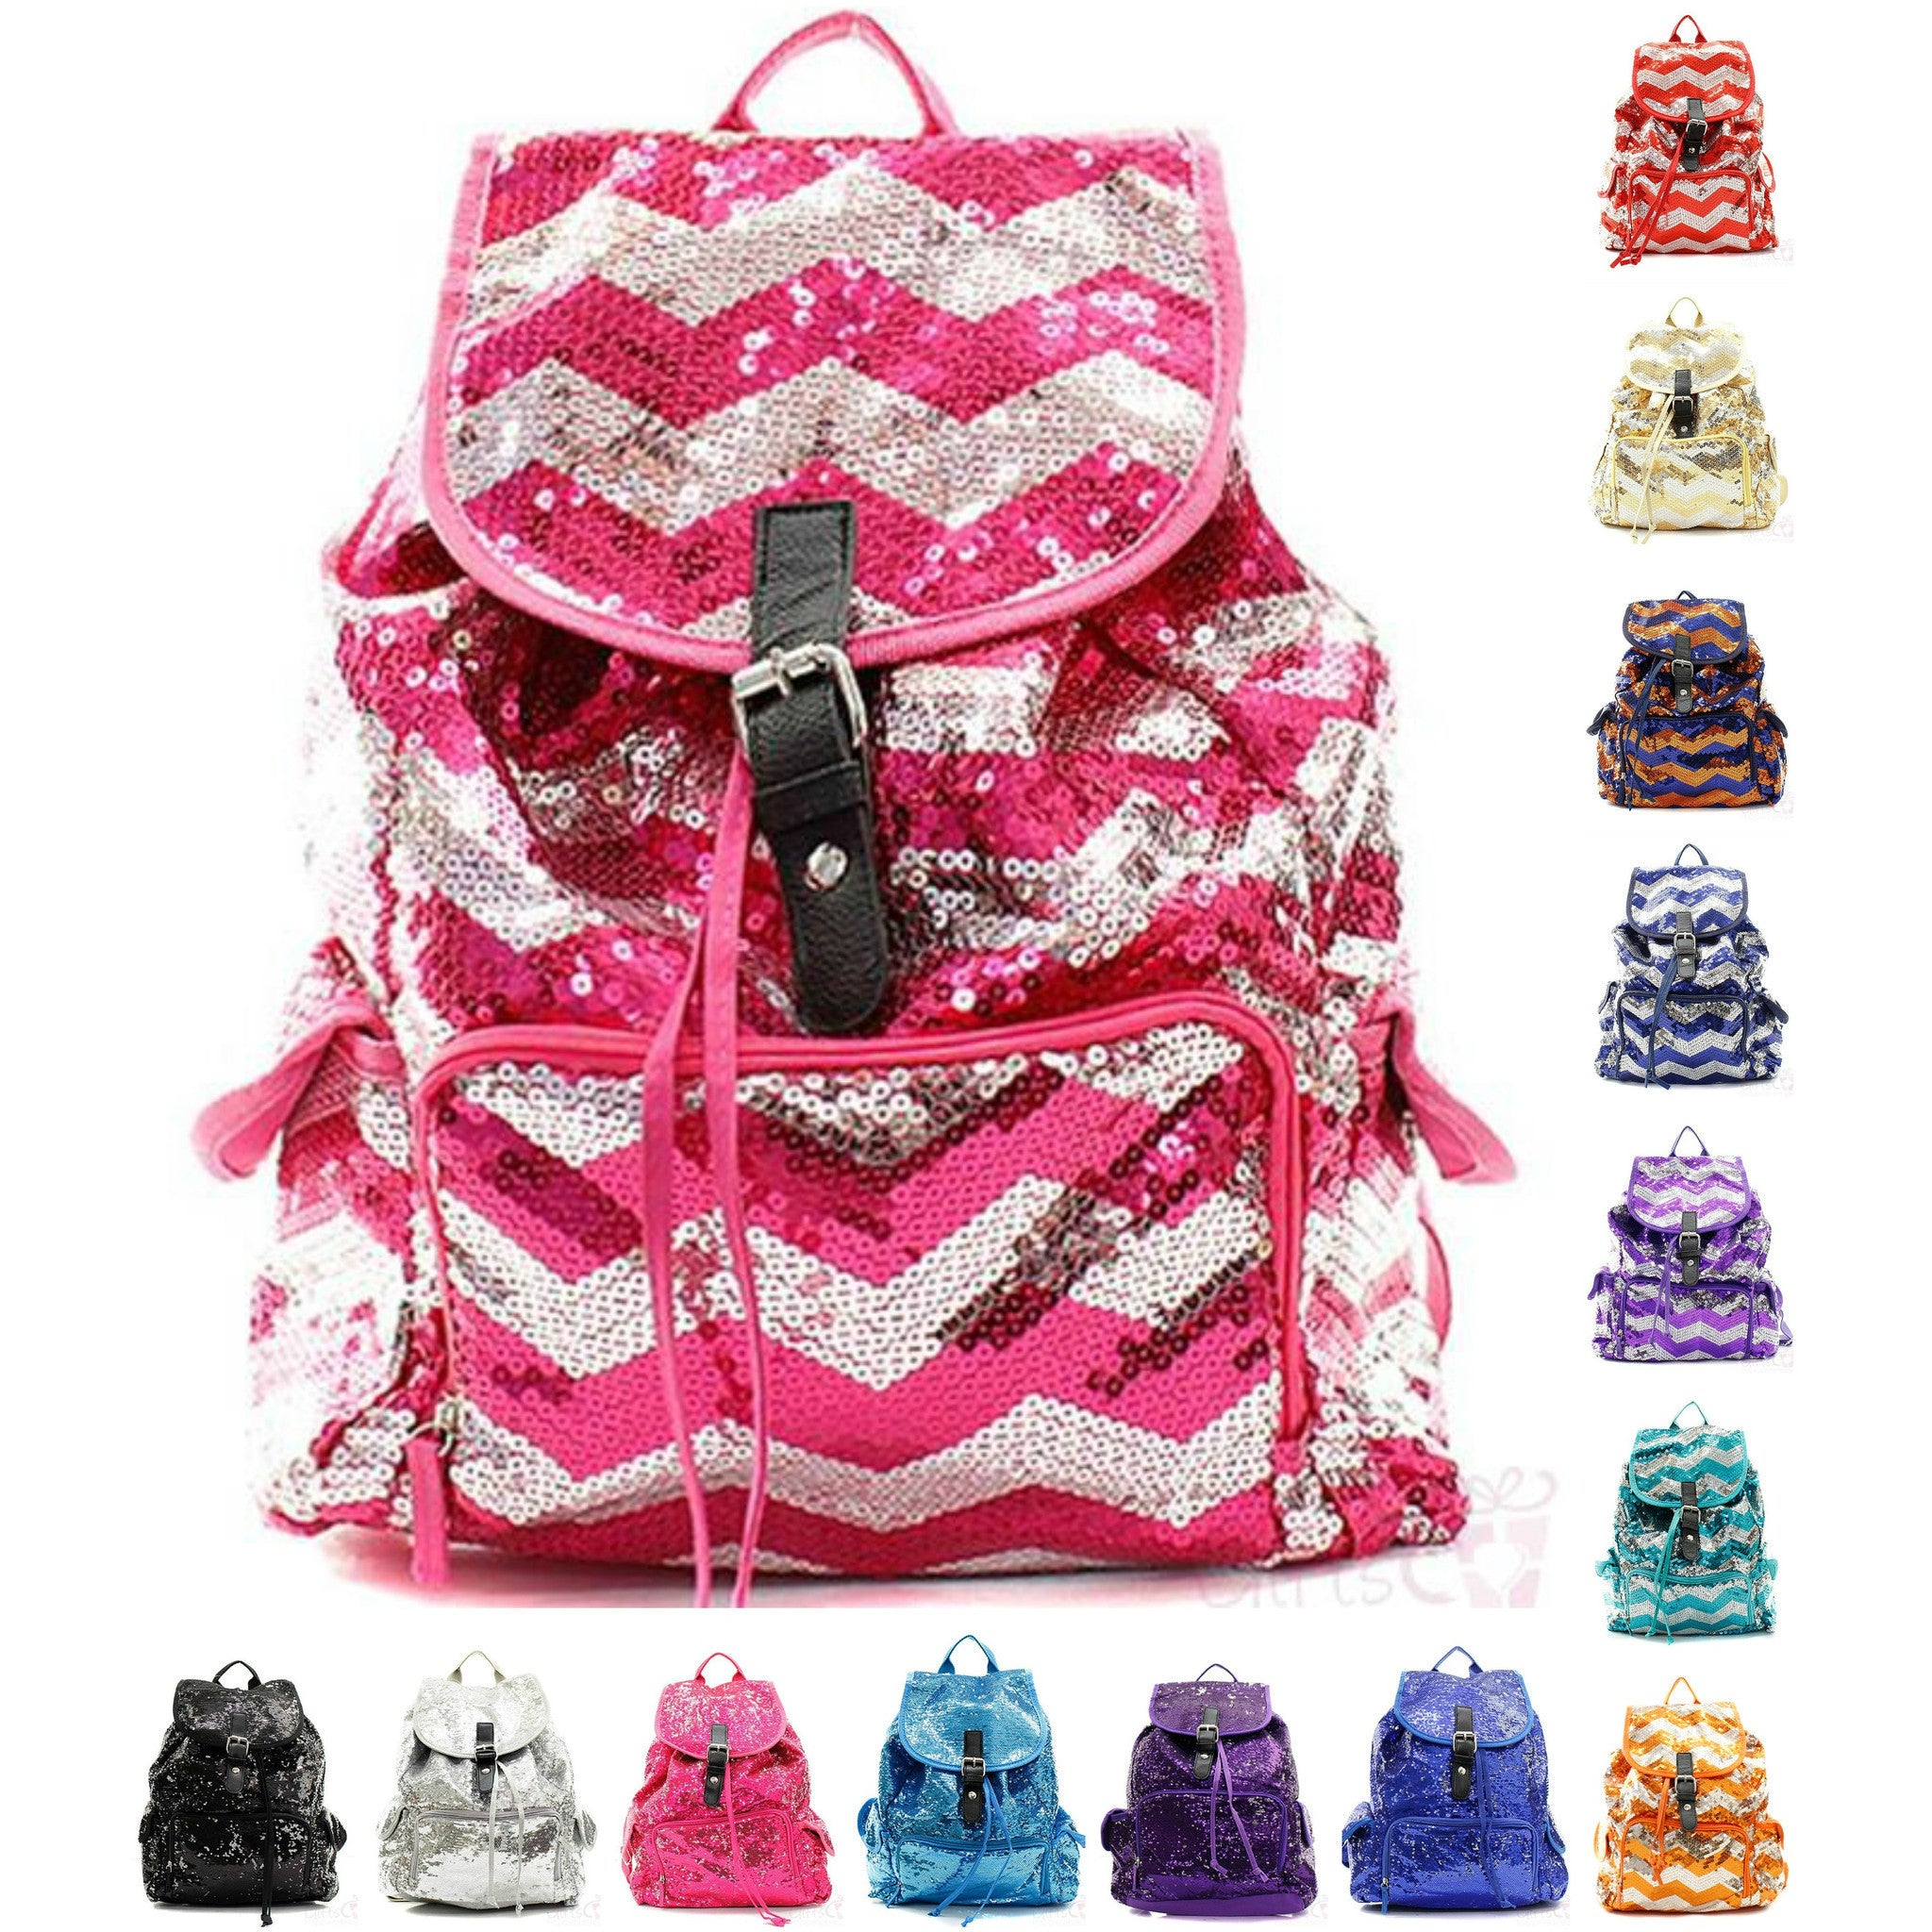 f478e9a58e09 Cute Sequin Backpack Drawstring Knapsack Bookbag – Gifts Happen Here